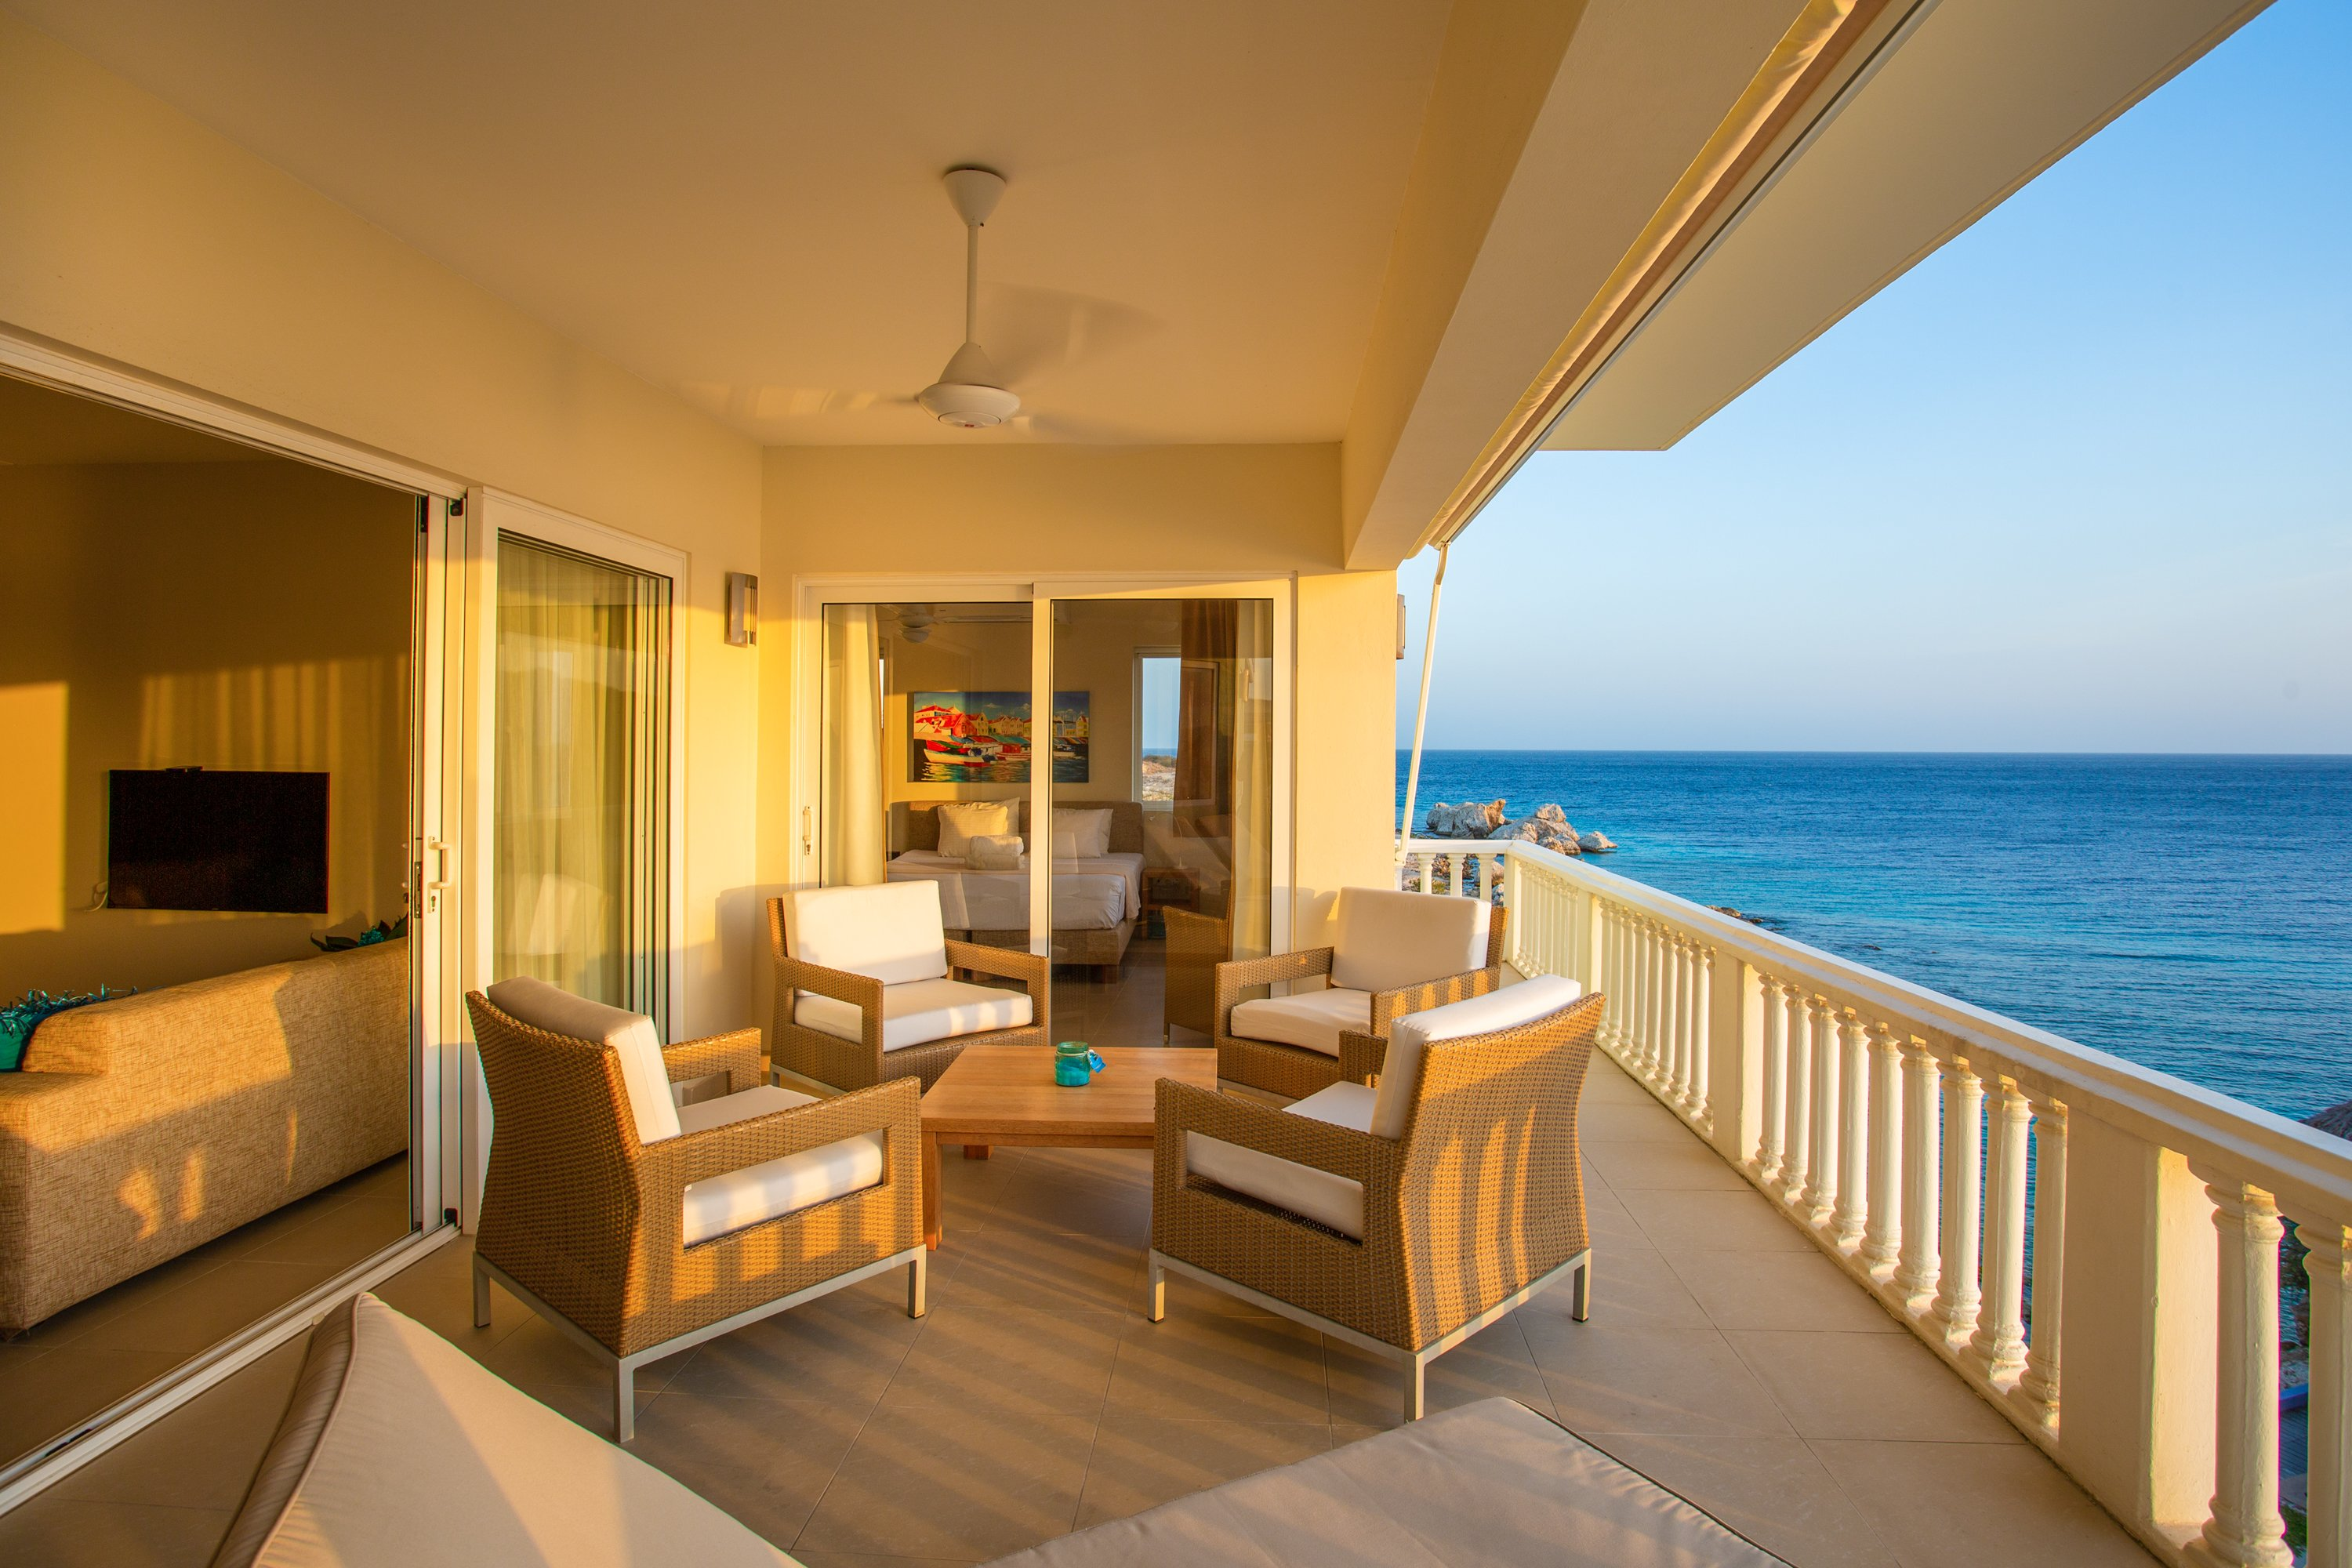 Blue Bay Ocean Suites